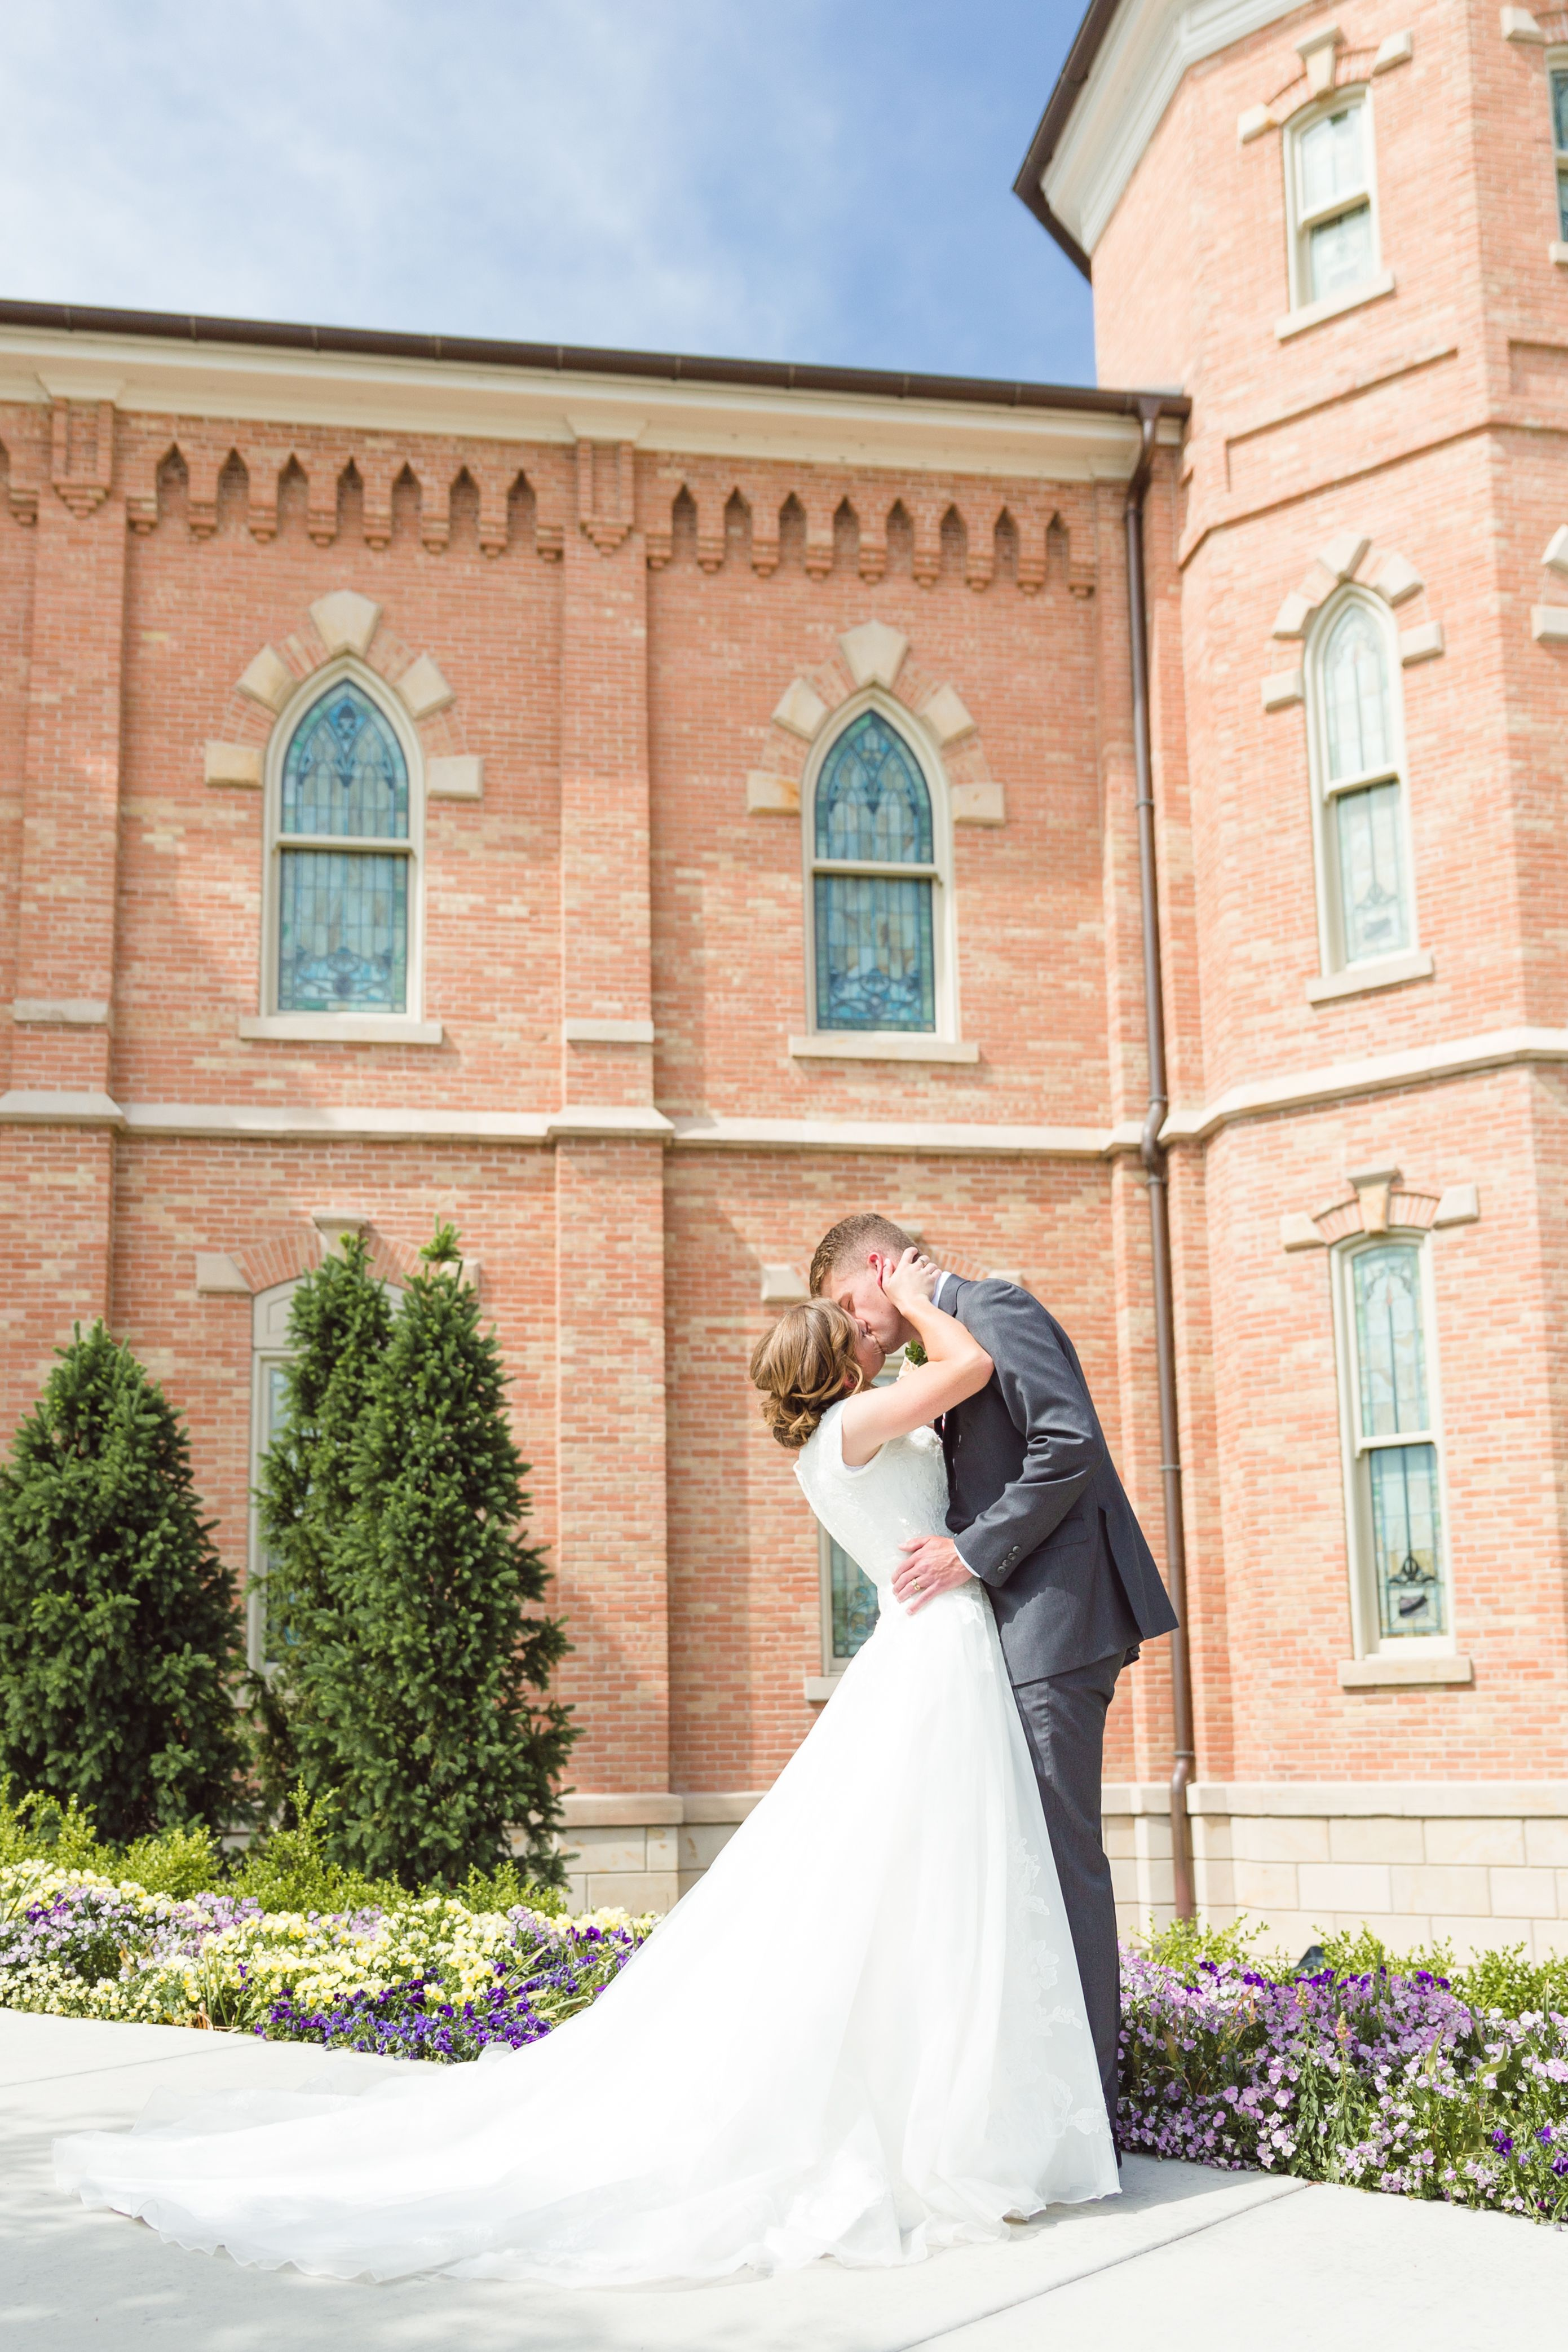 Pin on lds temple weddings